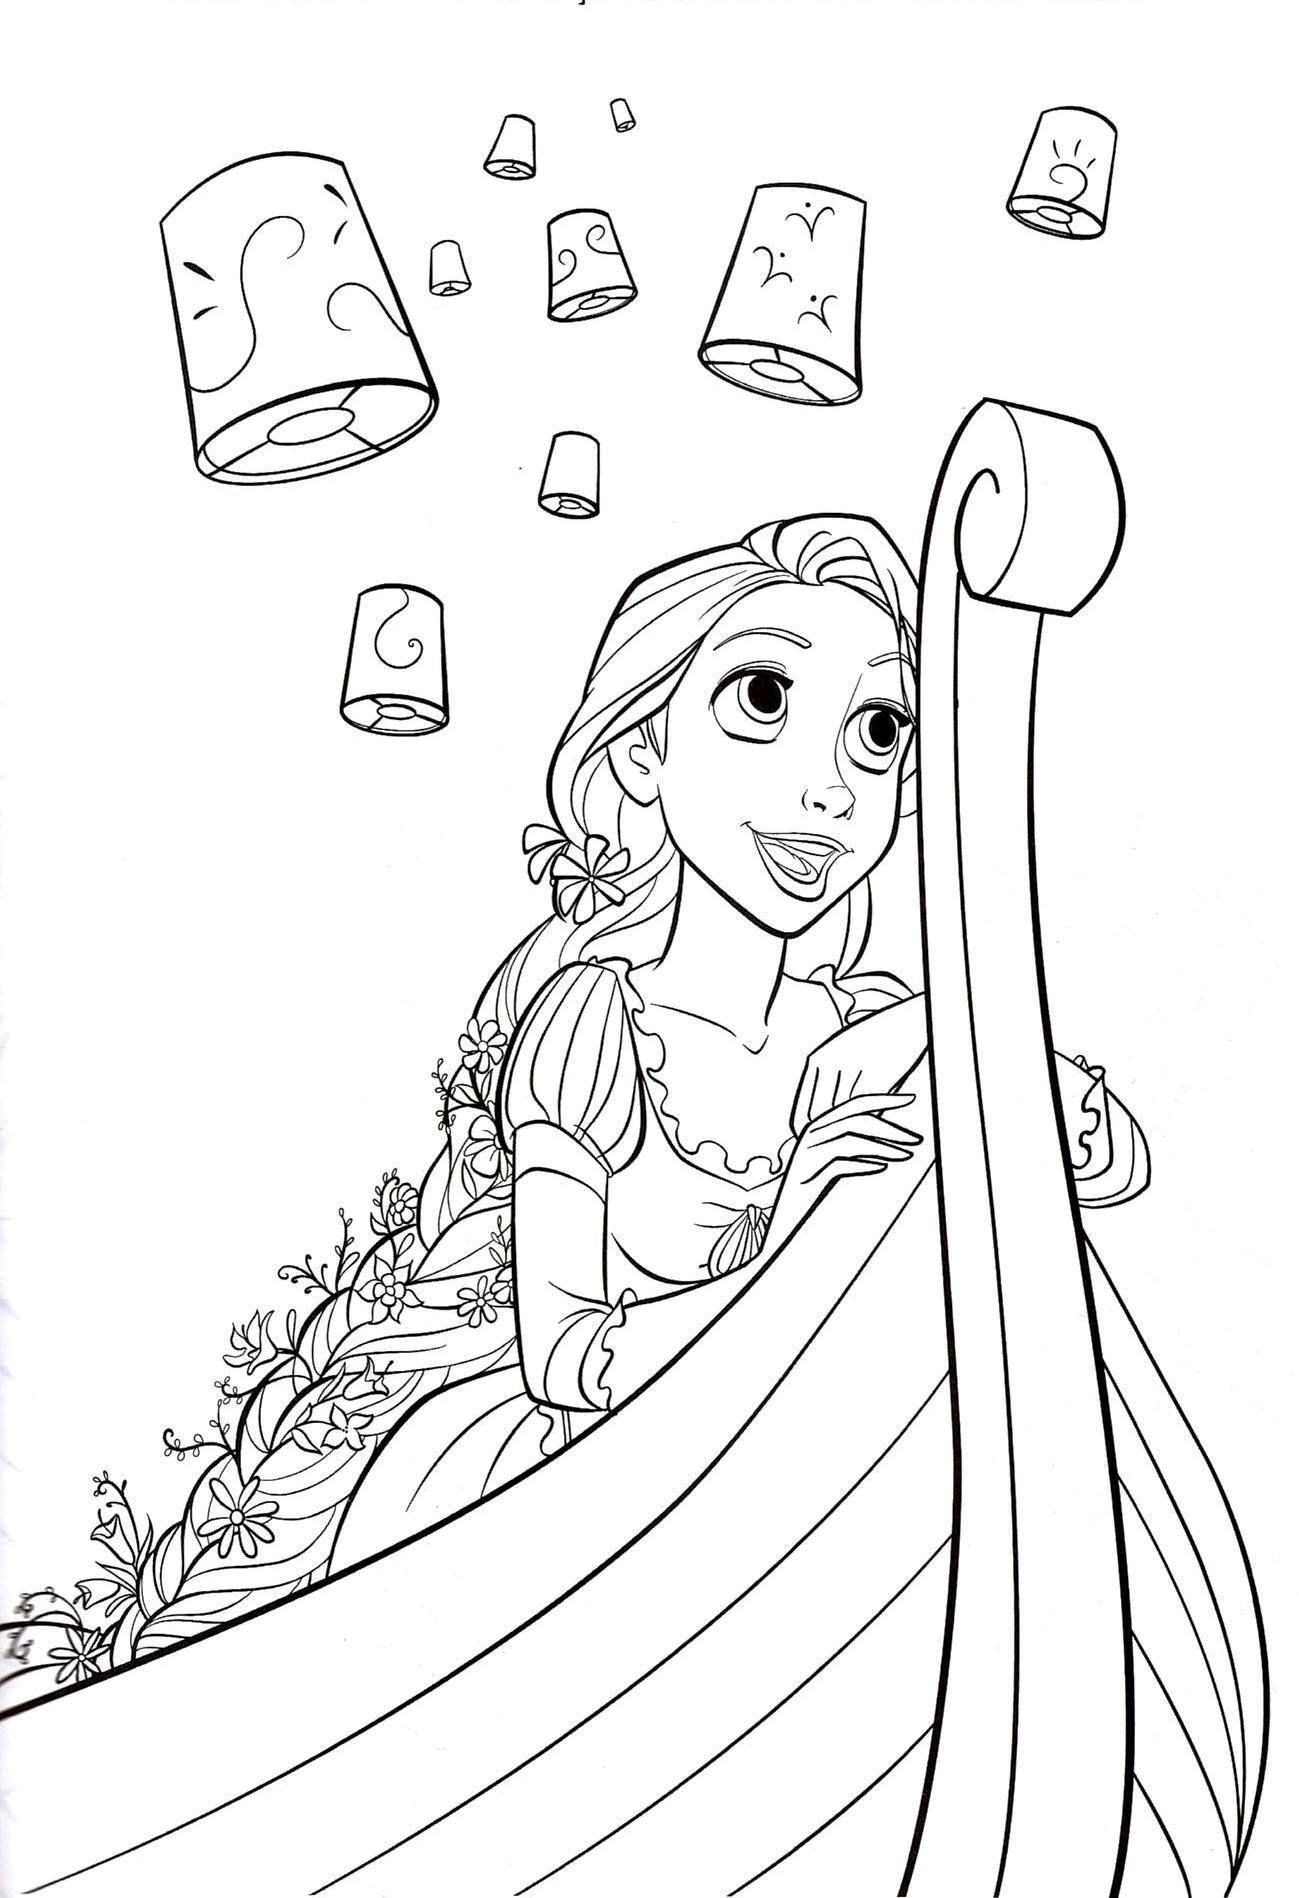 Disney Rapunzel Coloring Pages Free Printable Disney Princess